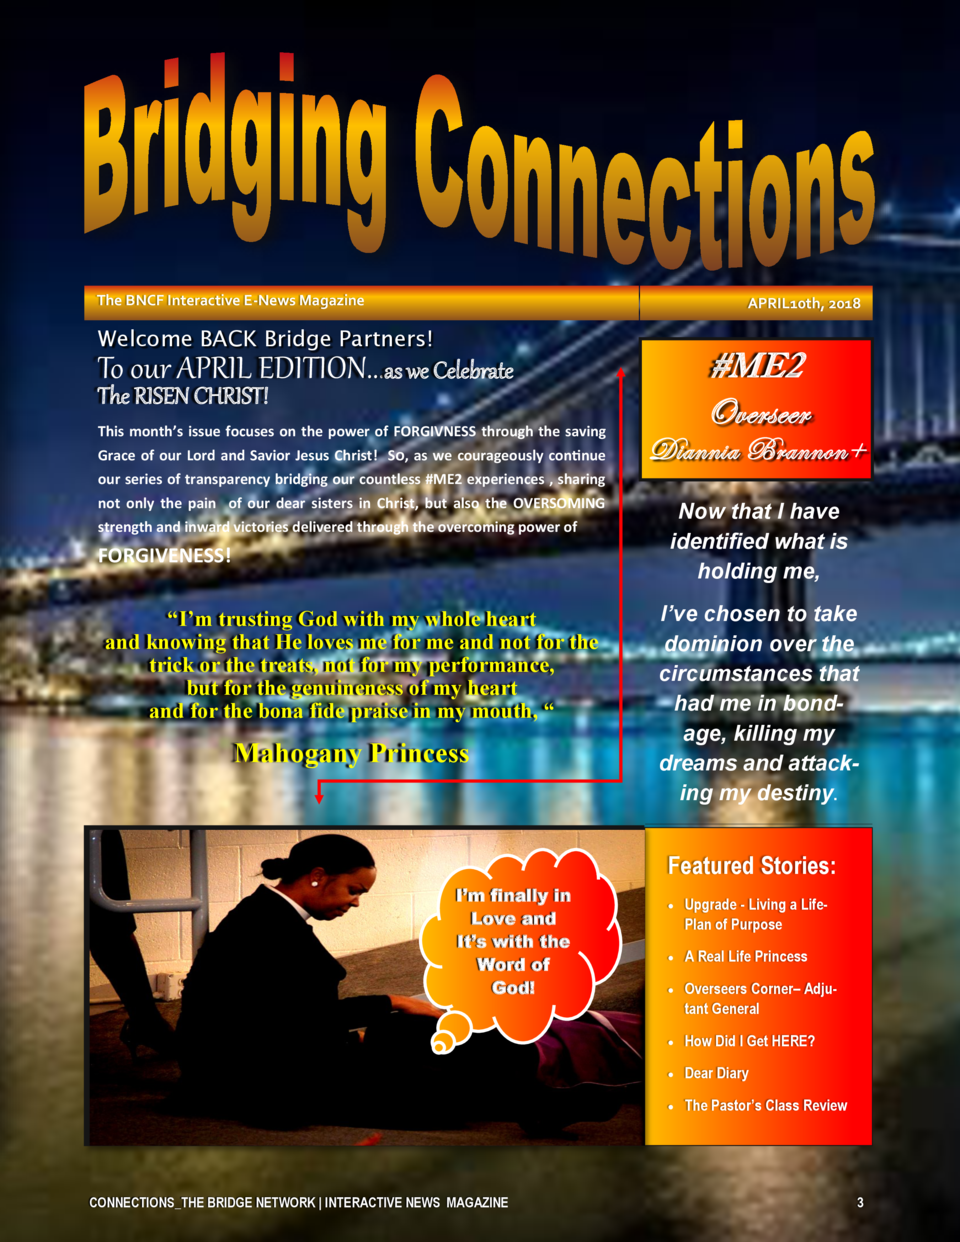 The BNCF Interactive E-News Magazine  APRIL10th, 2018  Welcome BACK Bridge Partners    ME2 Overseer  To our APRIL EDITION....